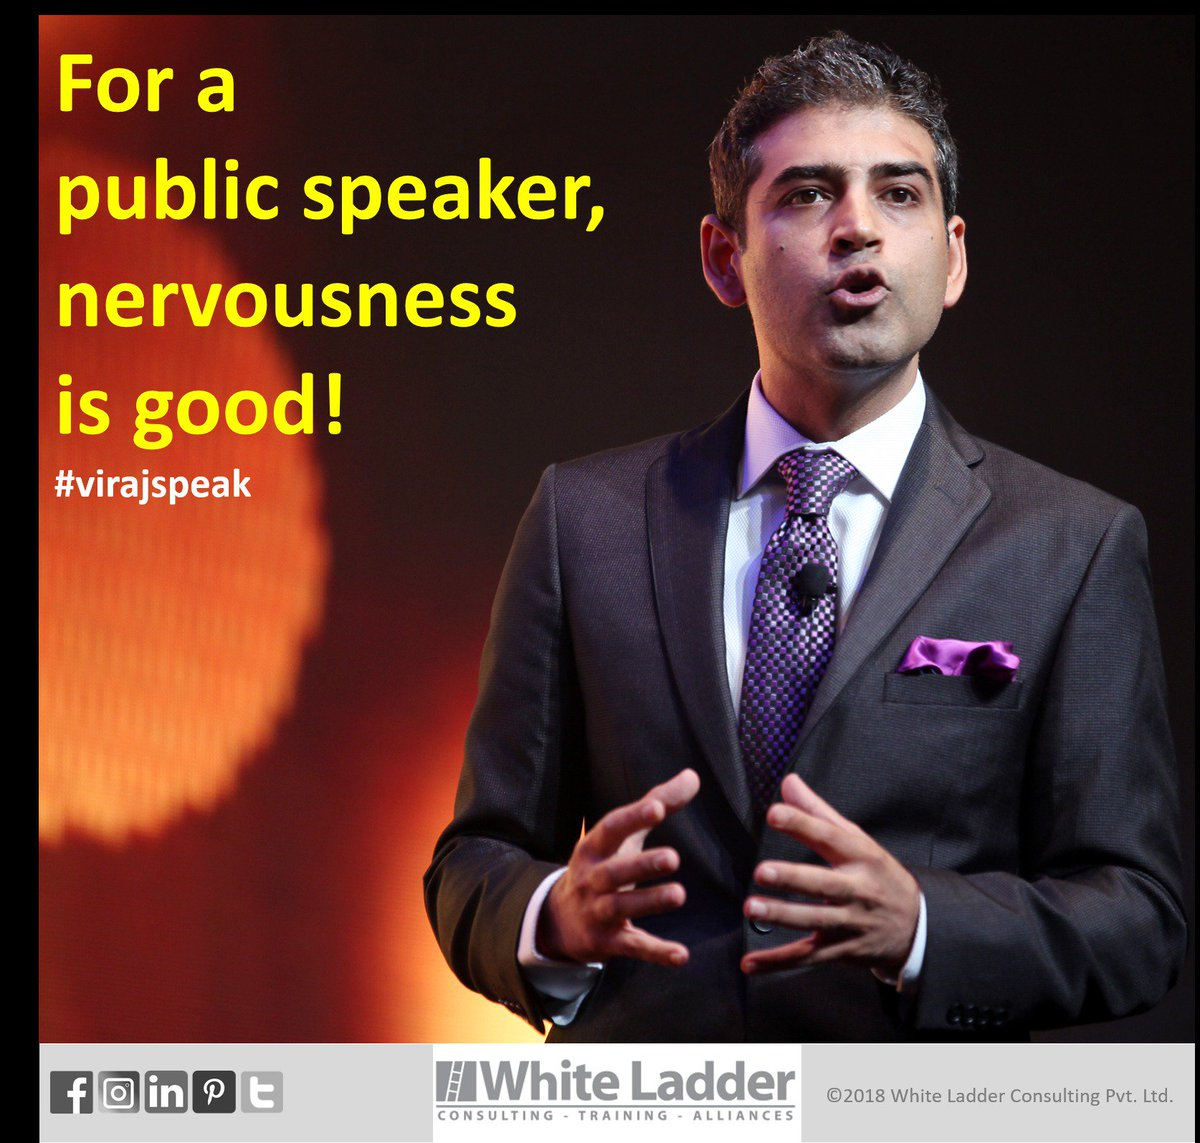 It is good to be a little nervous before a #publicspeaking engagement. It is this feeling that will keep you from being overconfident and ensuring you do your research, prep and practice. Welcome this nervousness and channel it to your advantage! #virajspeak<br>http://pic.twitter.com/uaw97w1Tyf